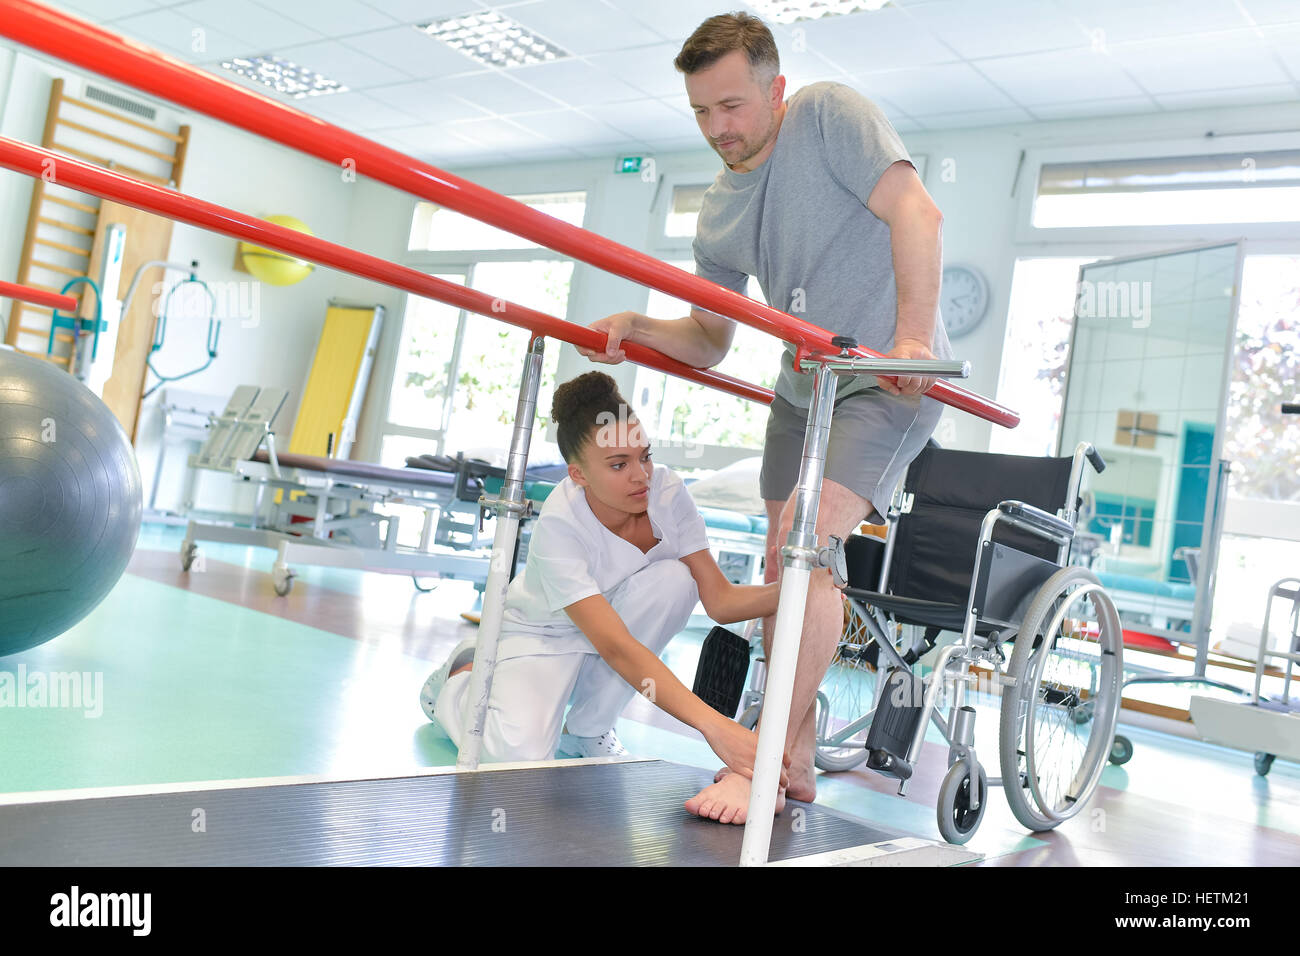 Occupational therapist helping patient to walk - Stock Image